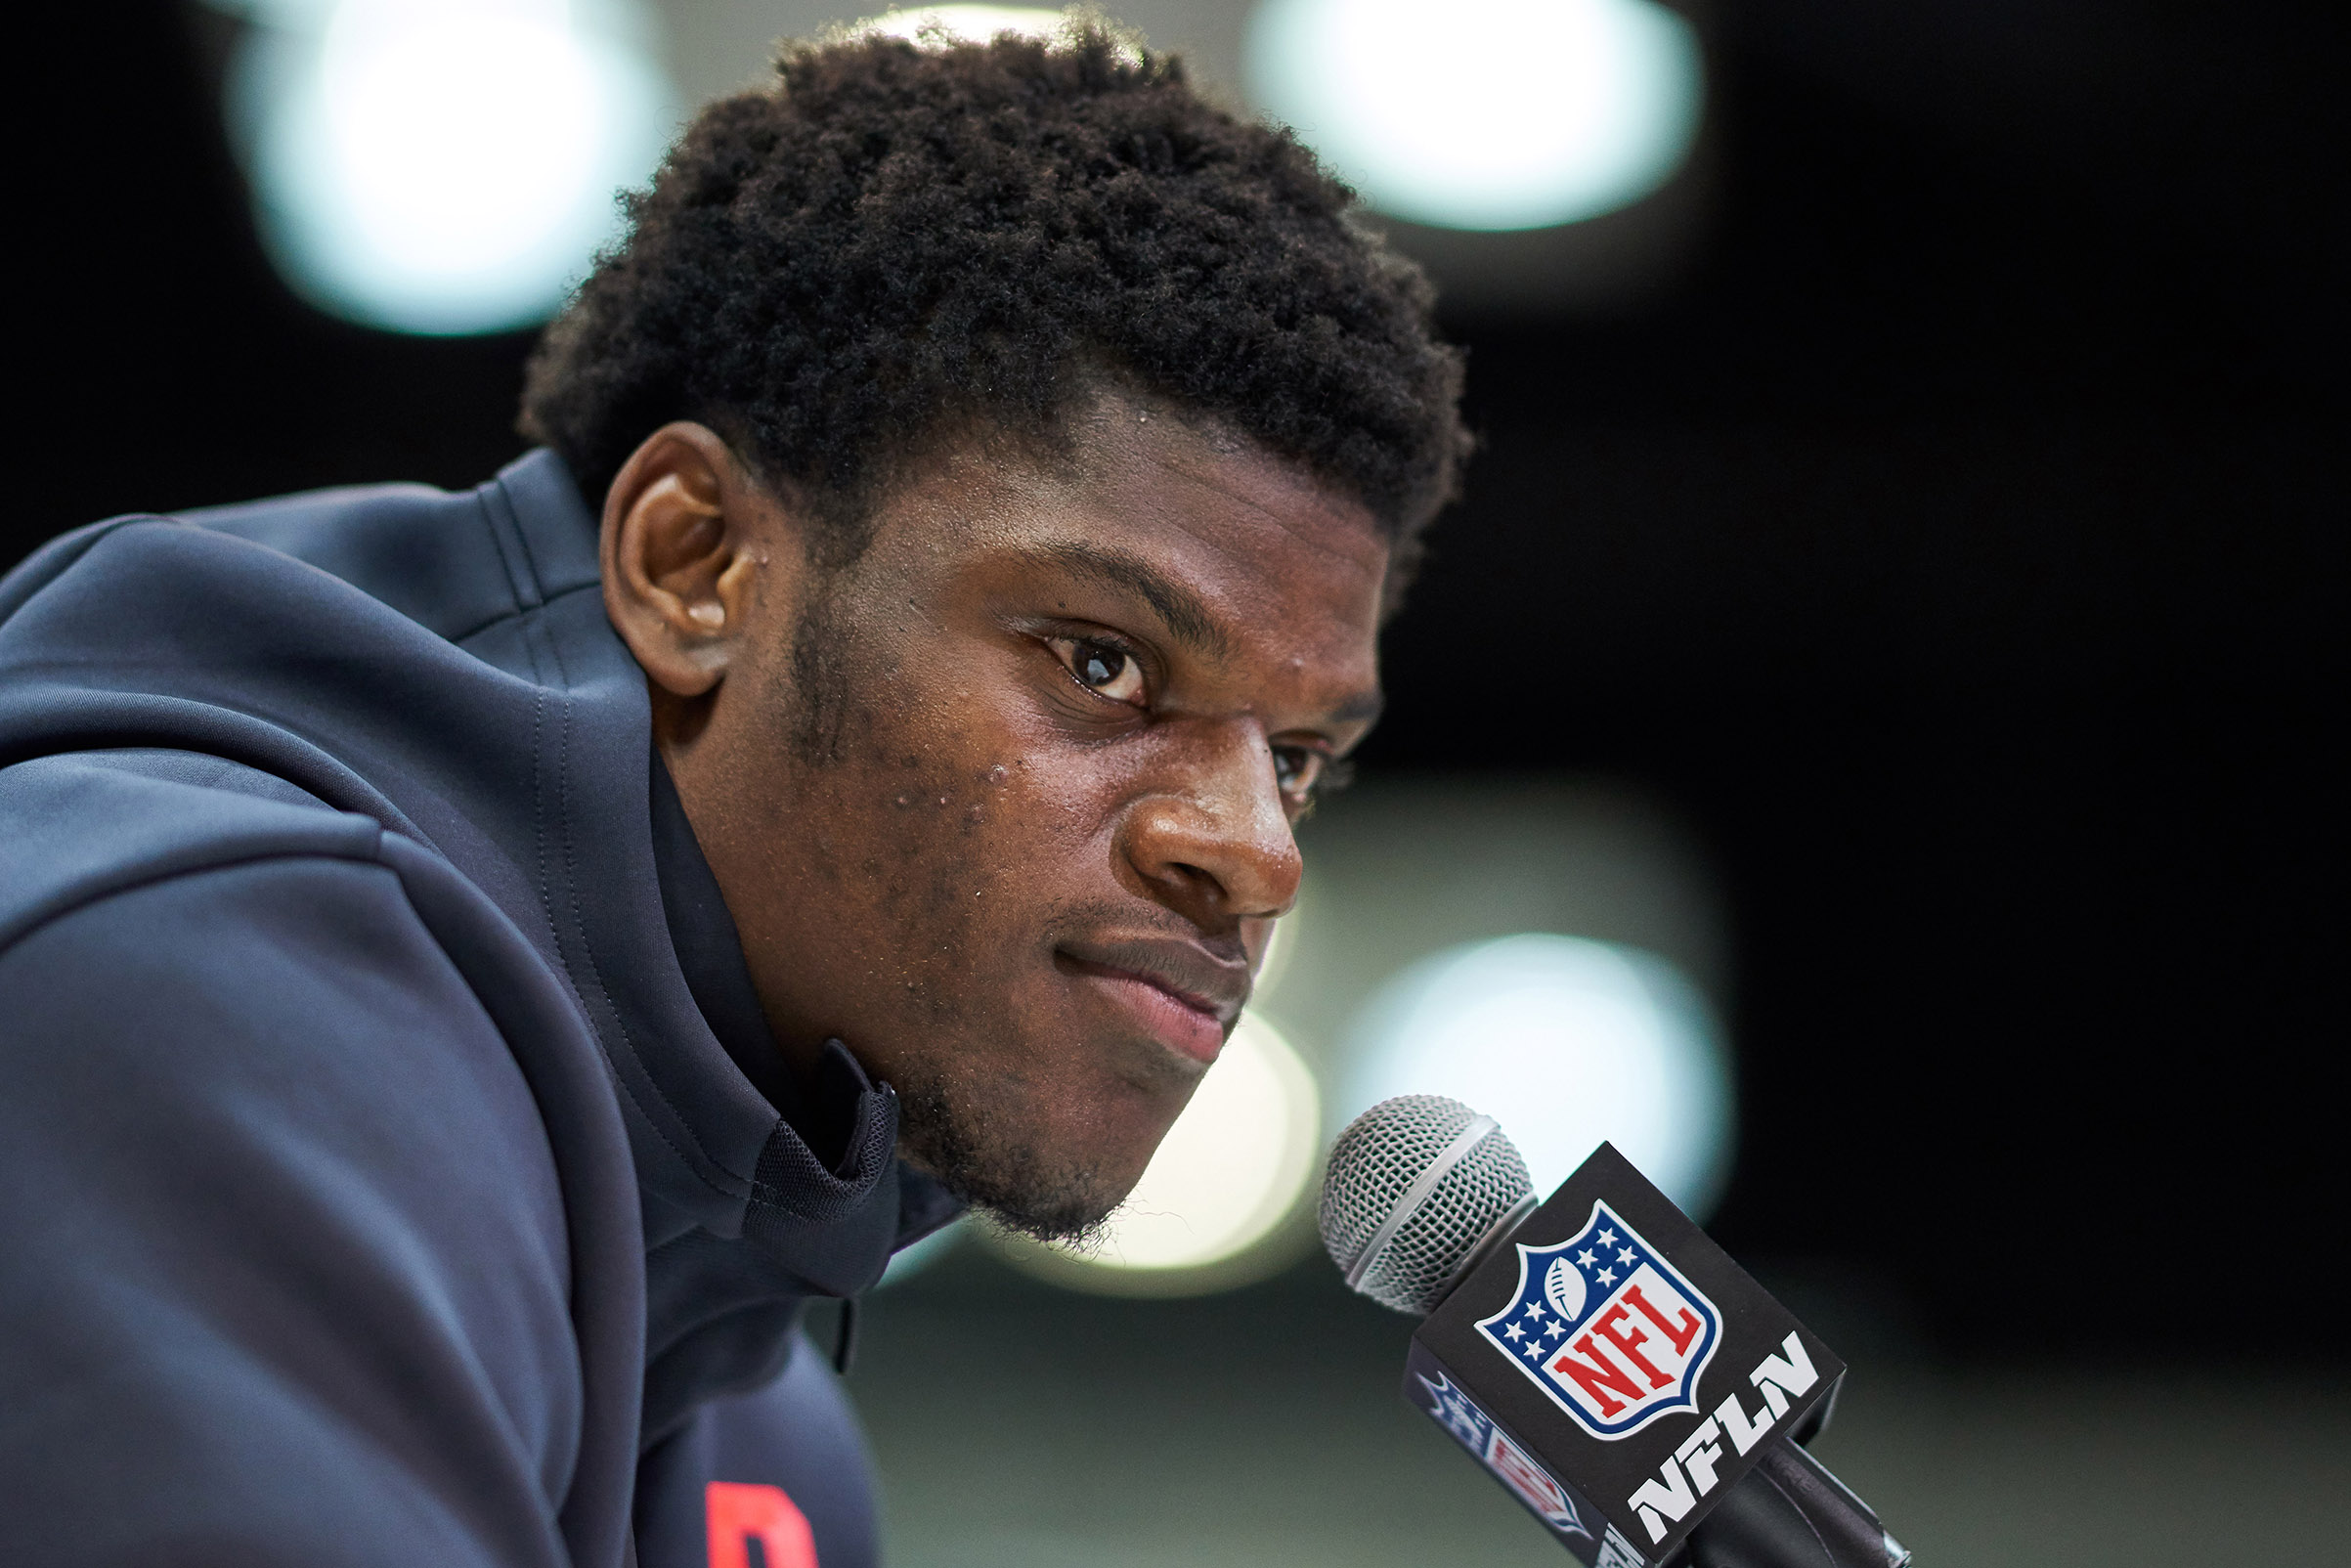 Louisville quarterback Lamar Jackson answers questions from the media during the NFL Scouting Combine on March 02, 2018 at Lucas Oil Stadium in Indianapolis, IN.